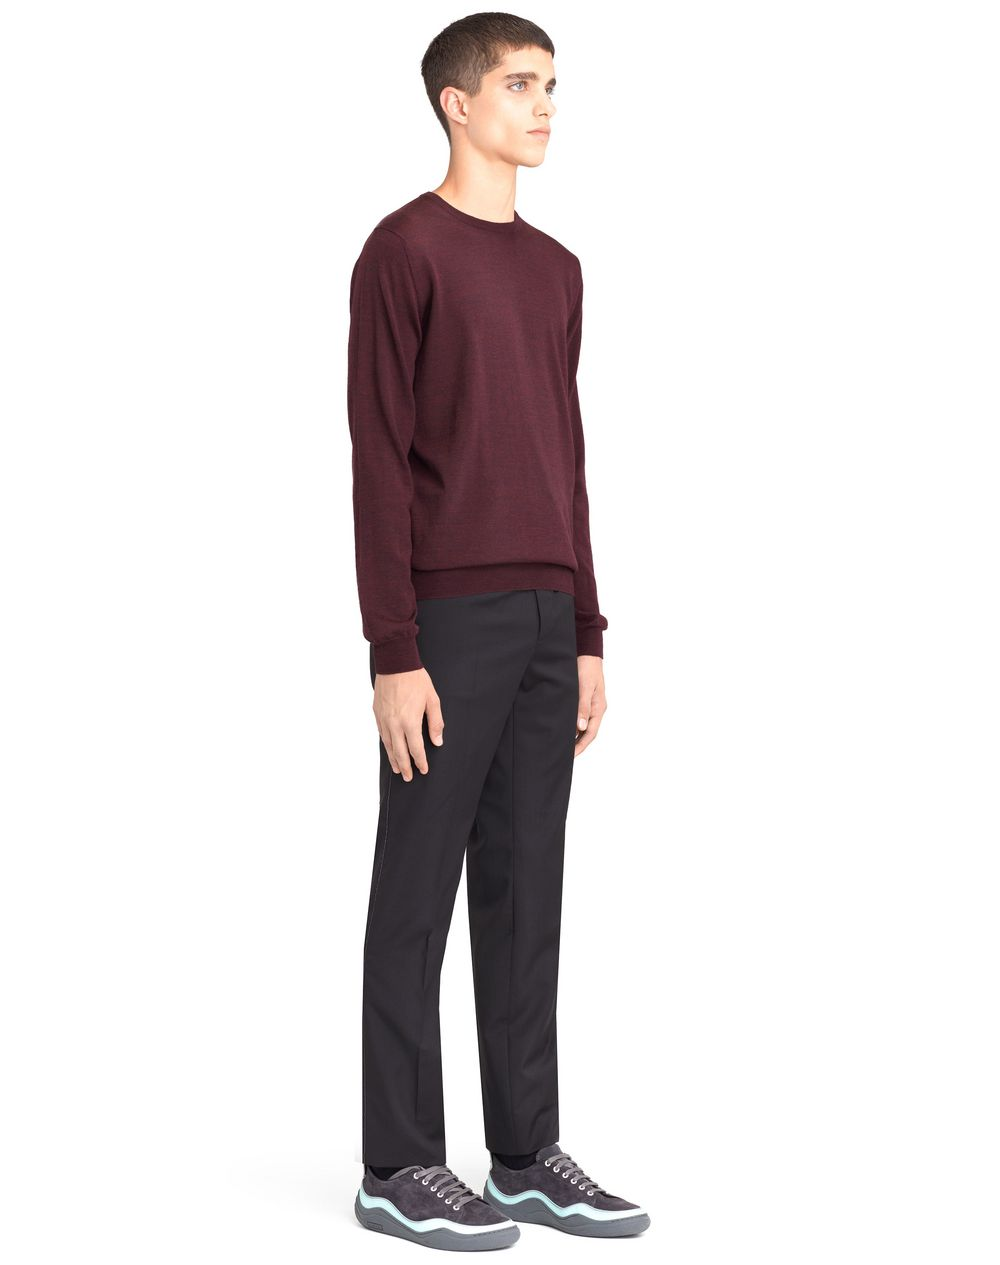 CREW NECK JERSEY SWEATER - Lanvin